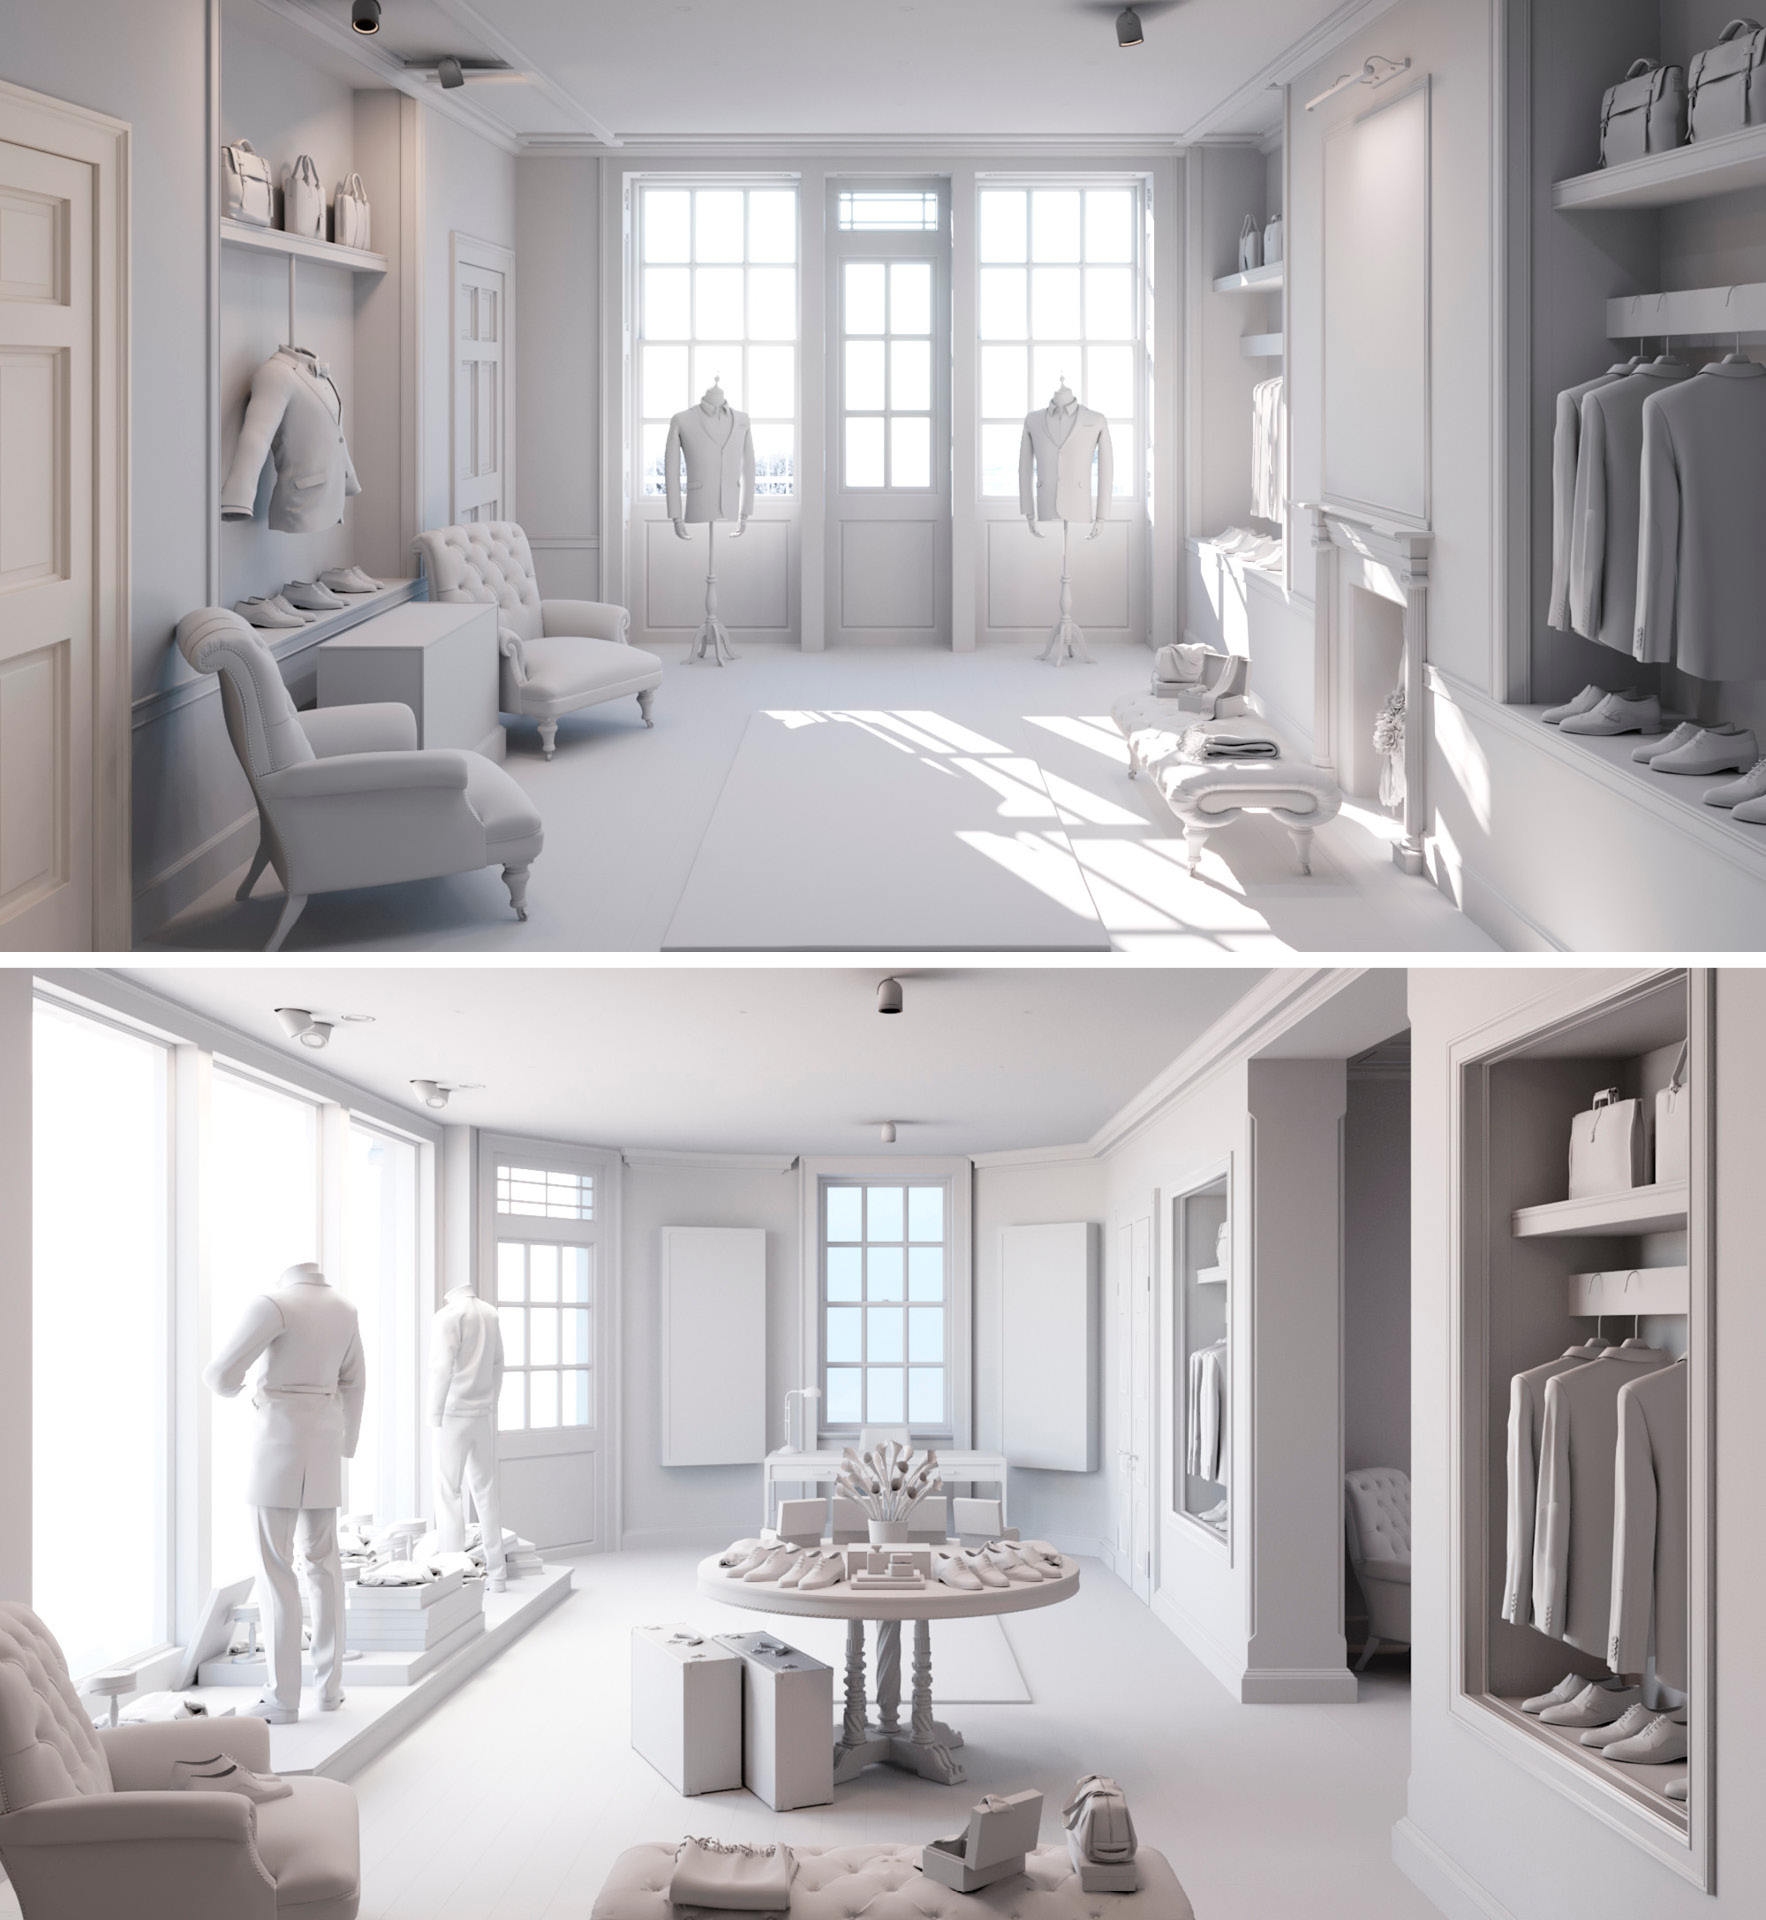 Interior design and visualisation for The Berkeley Group 01